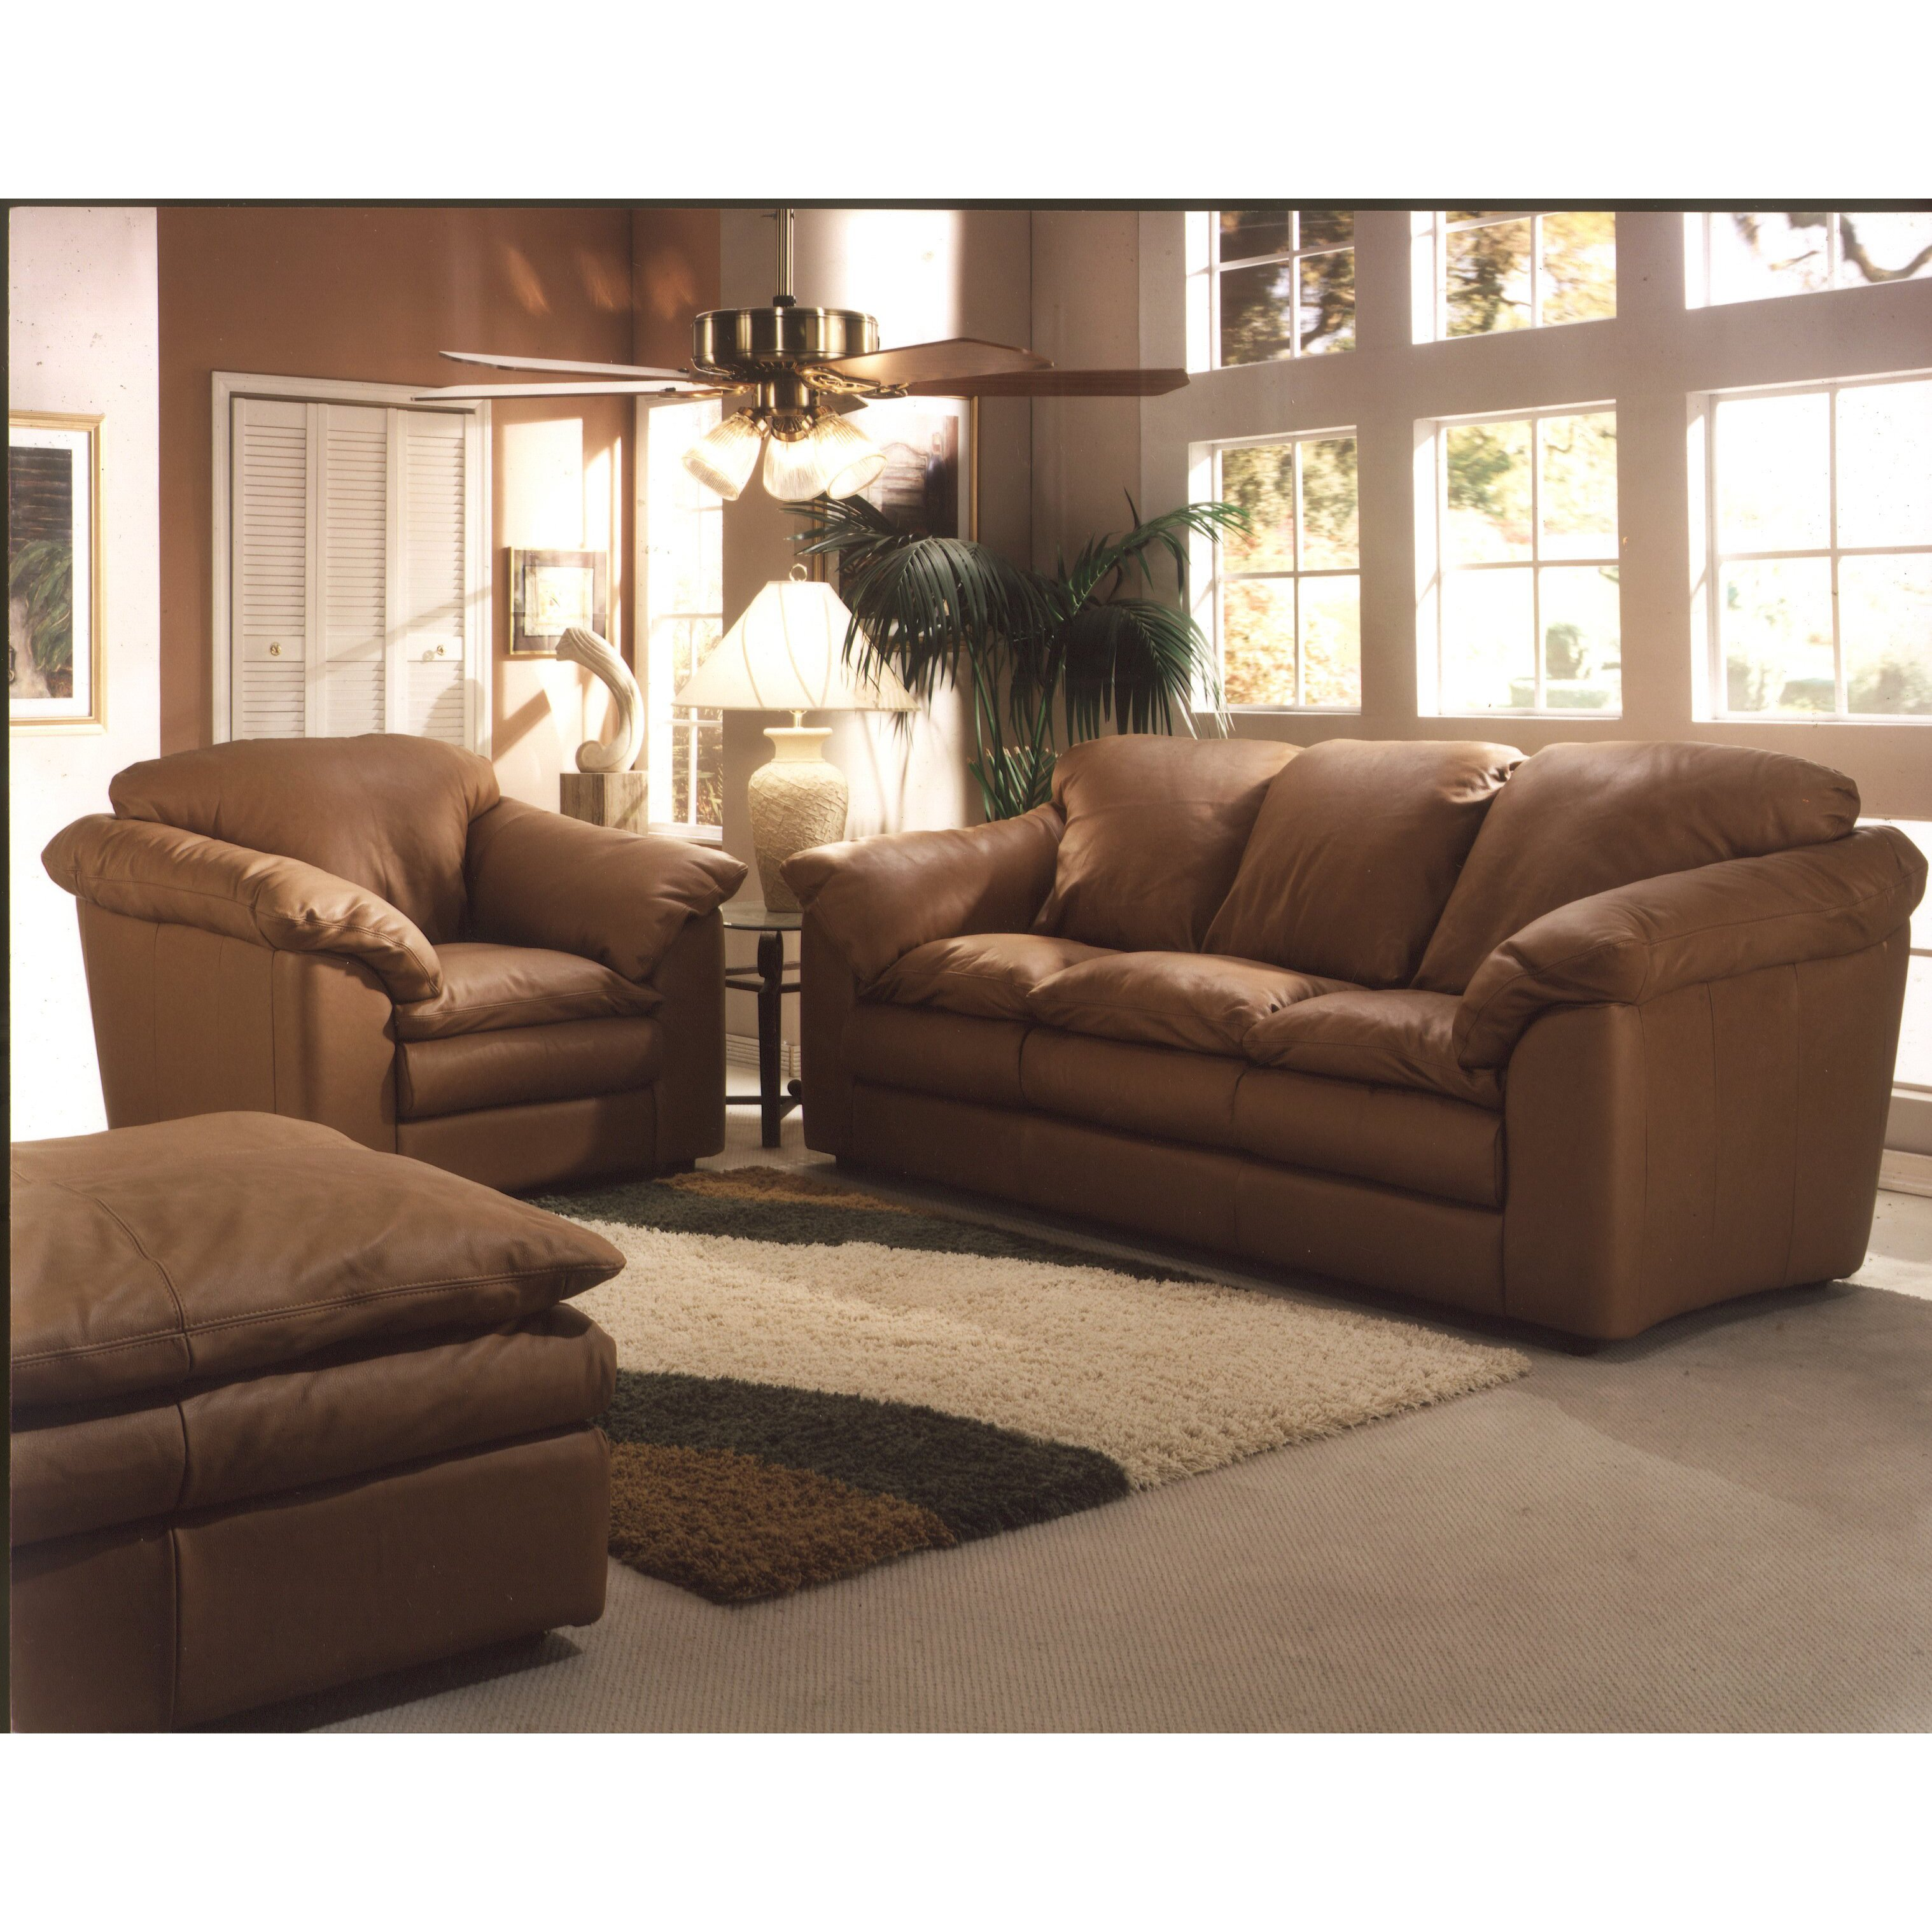 leather living rooms sets omnia leather oregon 3 seat leather living room set 15678